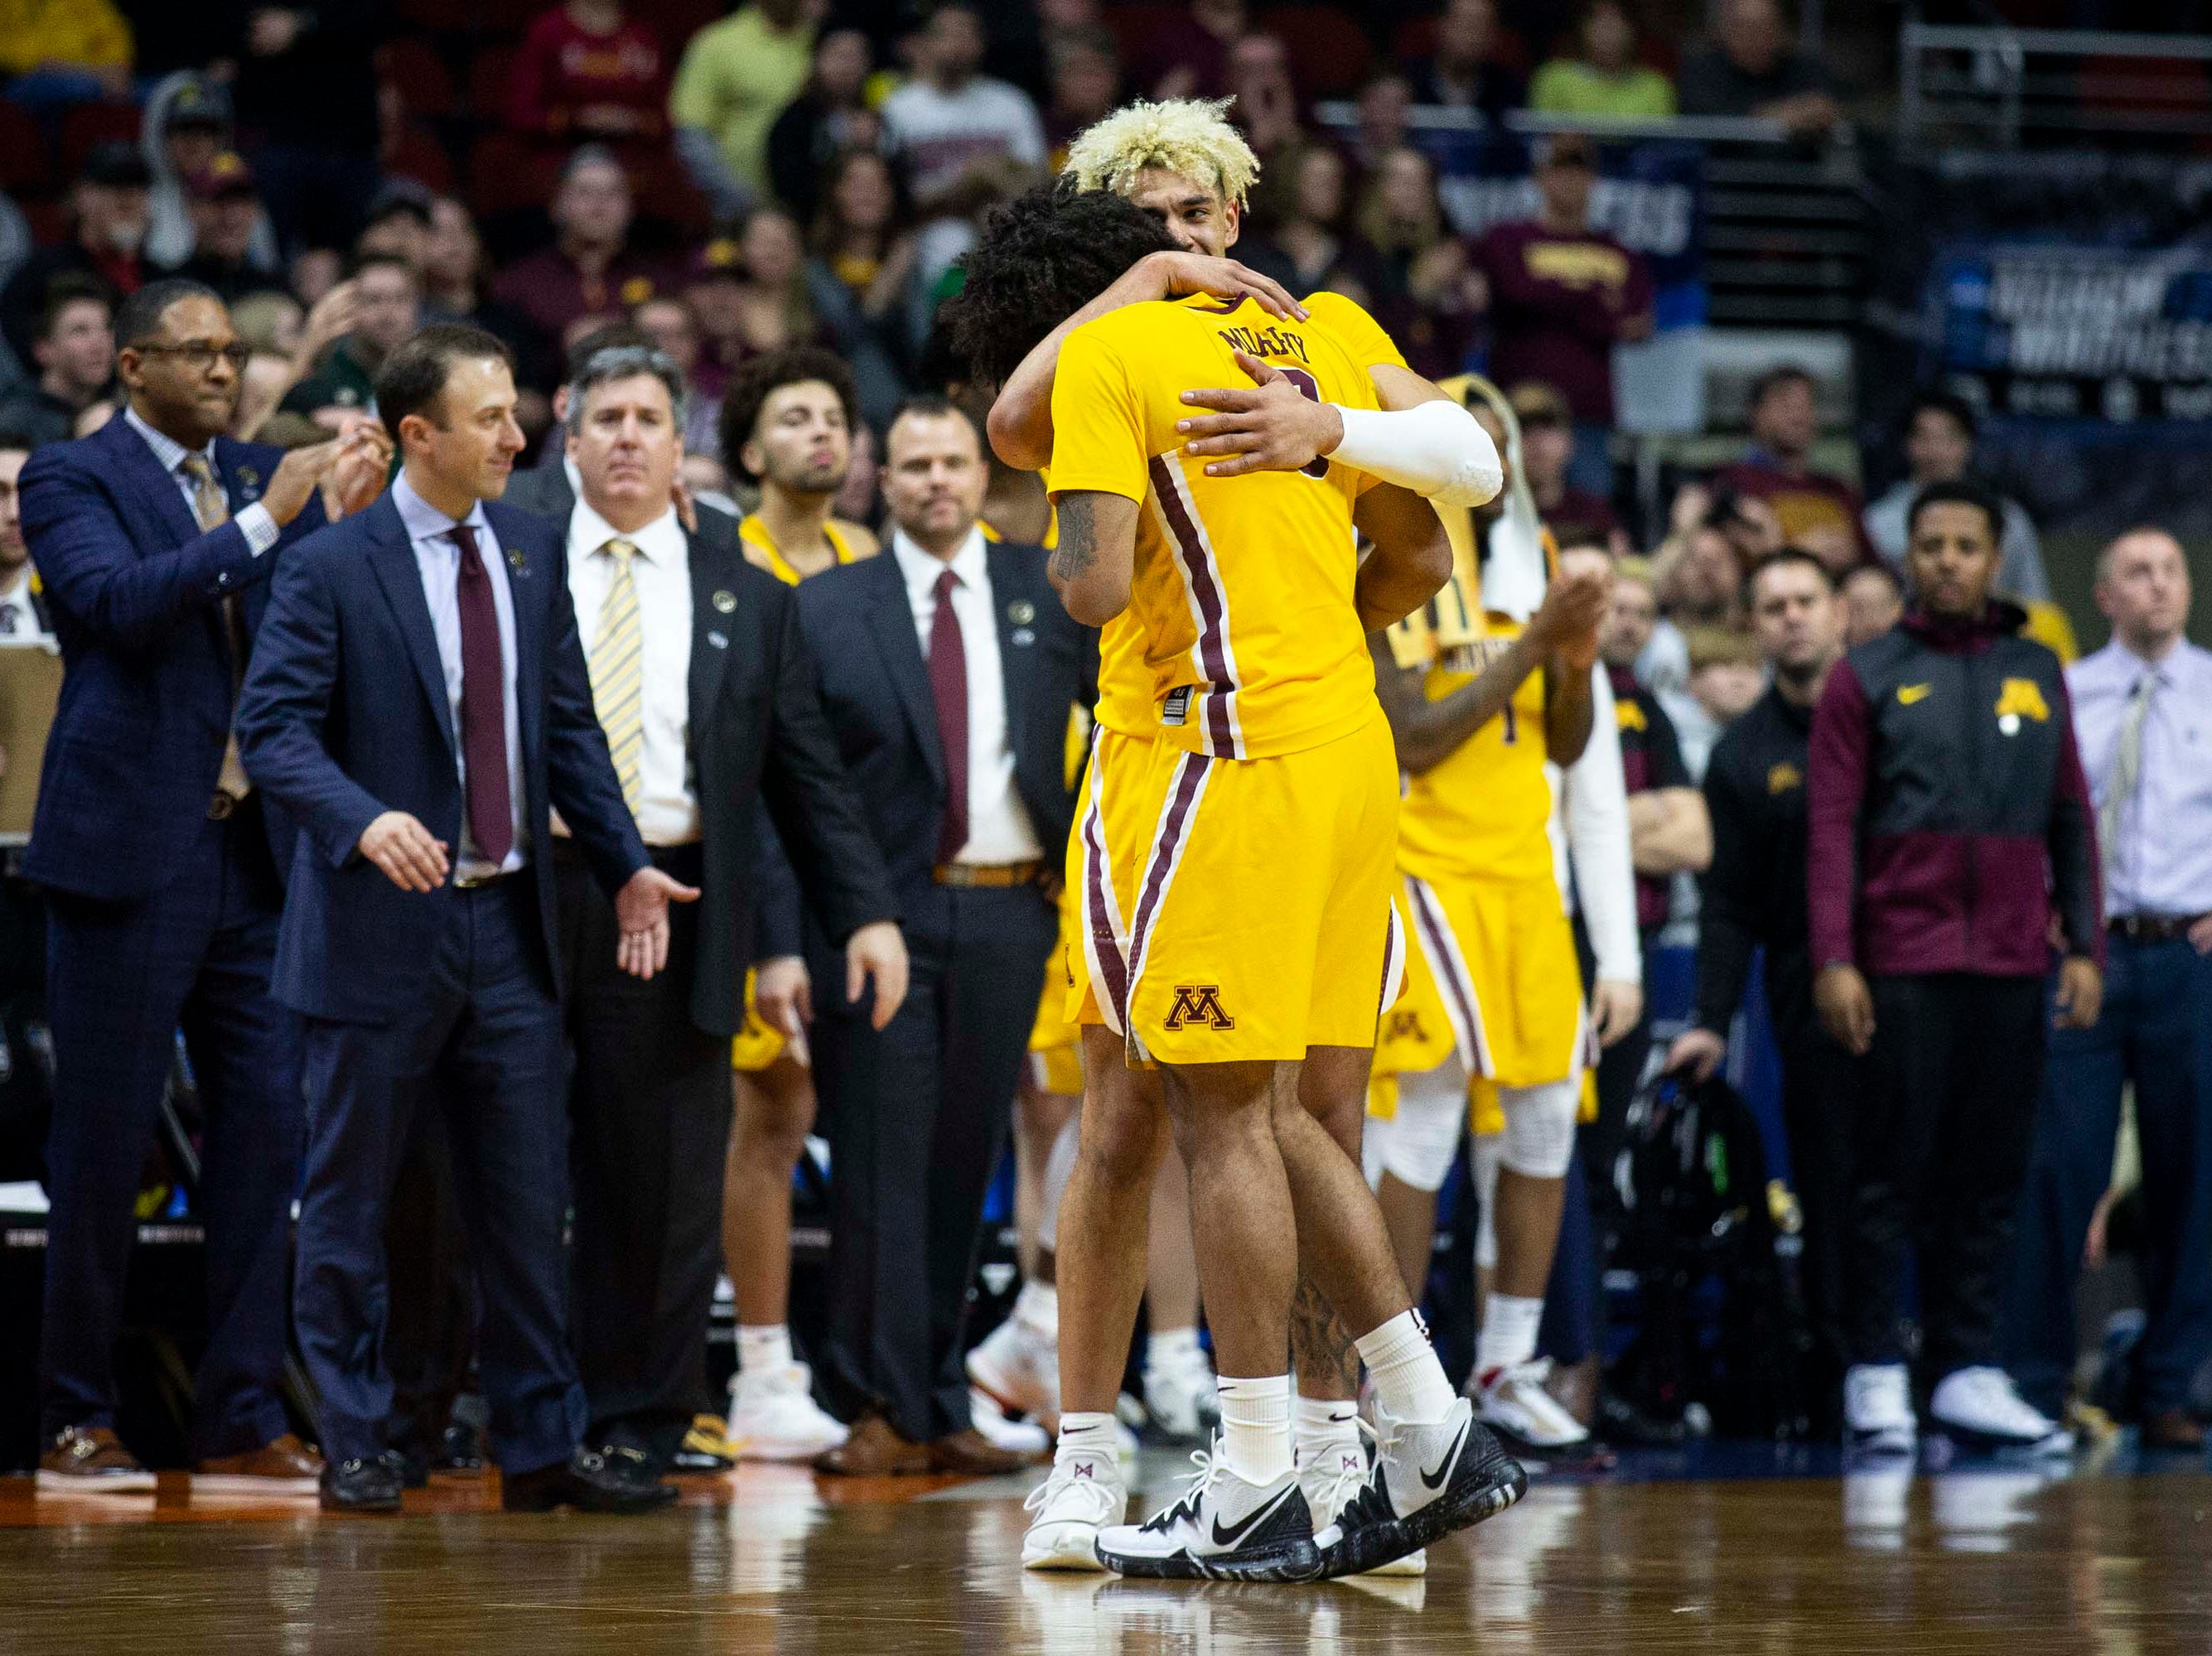 Minnesota's Jordan Murphy gets a hug from Minnesota's Jarvis Omersa as he checks out out of the game for the last time during the NCAA Tournament second-round match-up between Minnesota and Michigan State on Saturday, March 23, 2019, in Wells Fargo Arena in Des Moines, Iowa.